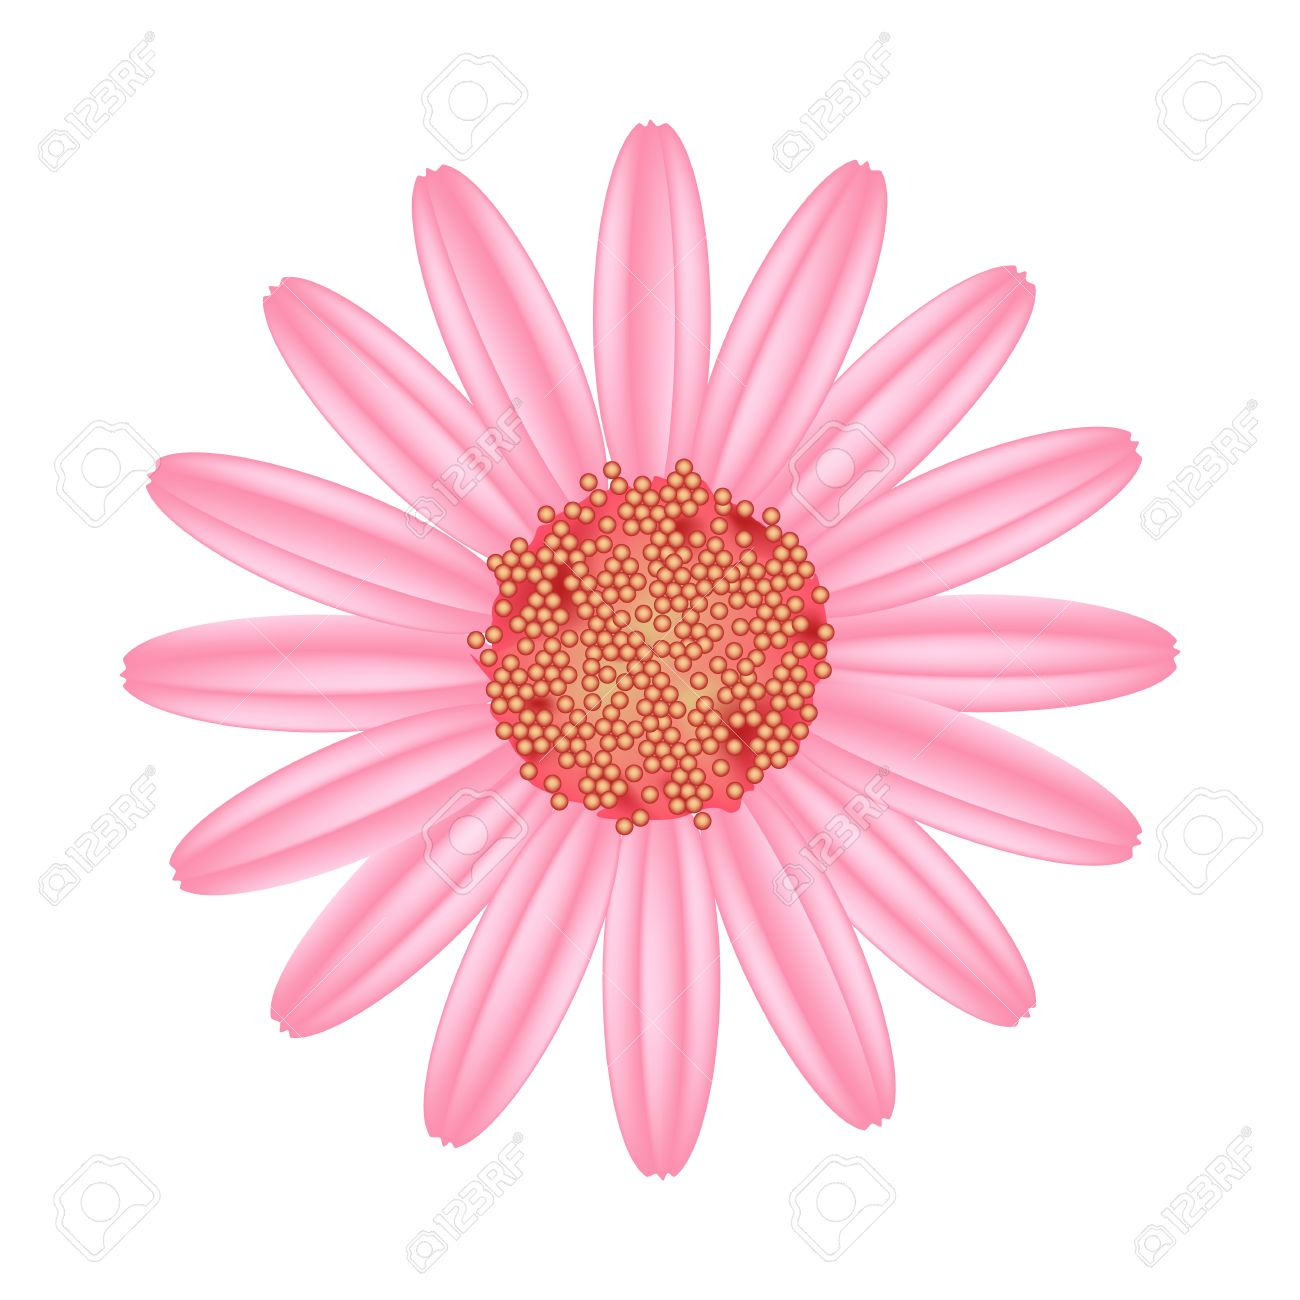 Symbol Of Love, Bright And Old Rose Osteospermum Daisy Flower.